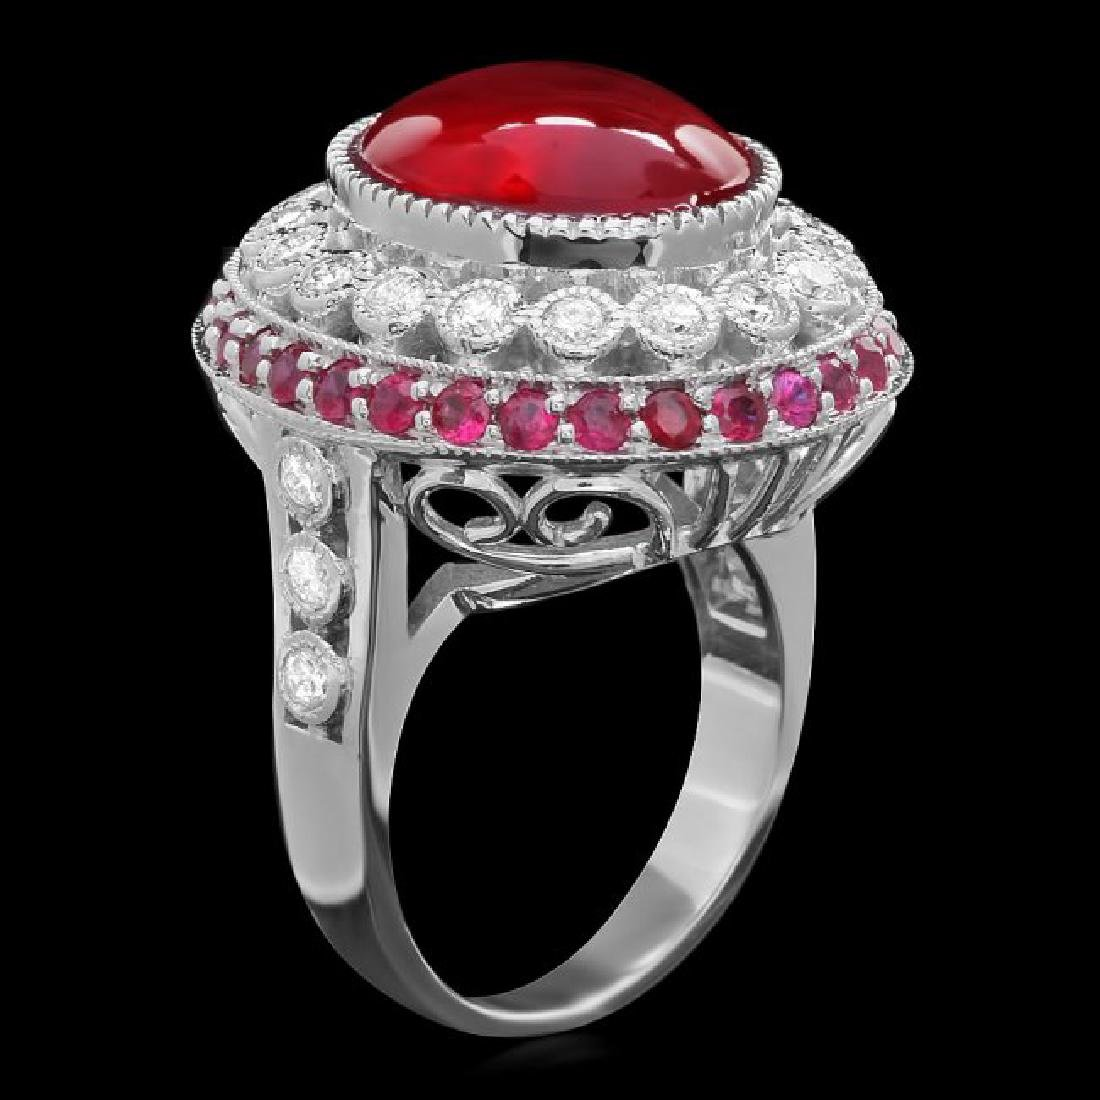 14k White Gold 12ct Ruby 0.90ct Diamond Ring - 2